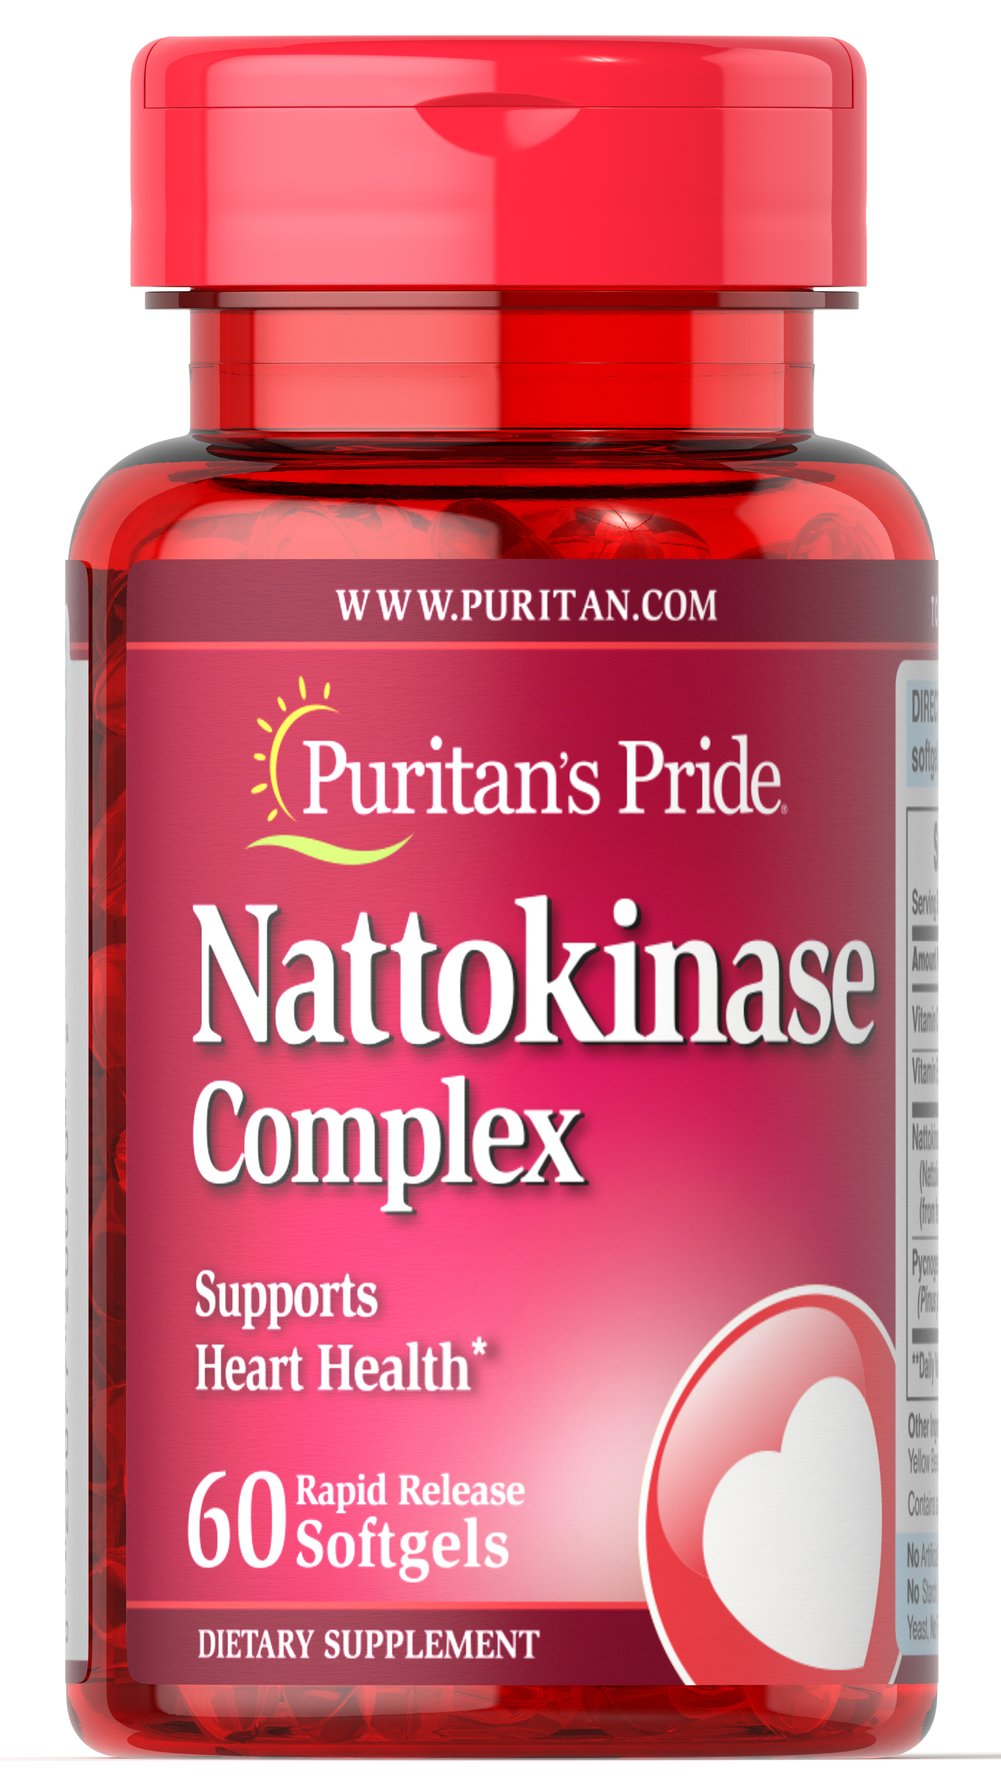 Nattokinase 100 mg Complex What the Japanese Know<br><br>The Japanese diet has long been known as heart healthy, in large part because it contains substantial amounts of soy-based nutrients.** Nattokinase is a beneficial enzyme derived from the fermented Japanese soybean called Natto, and is provided here in a rapid-release softgel.<br>• Nattokinase supports Heart and Circulatory Health**<br> 60 Softgels 100 mg $47.99